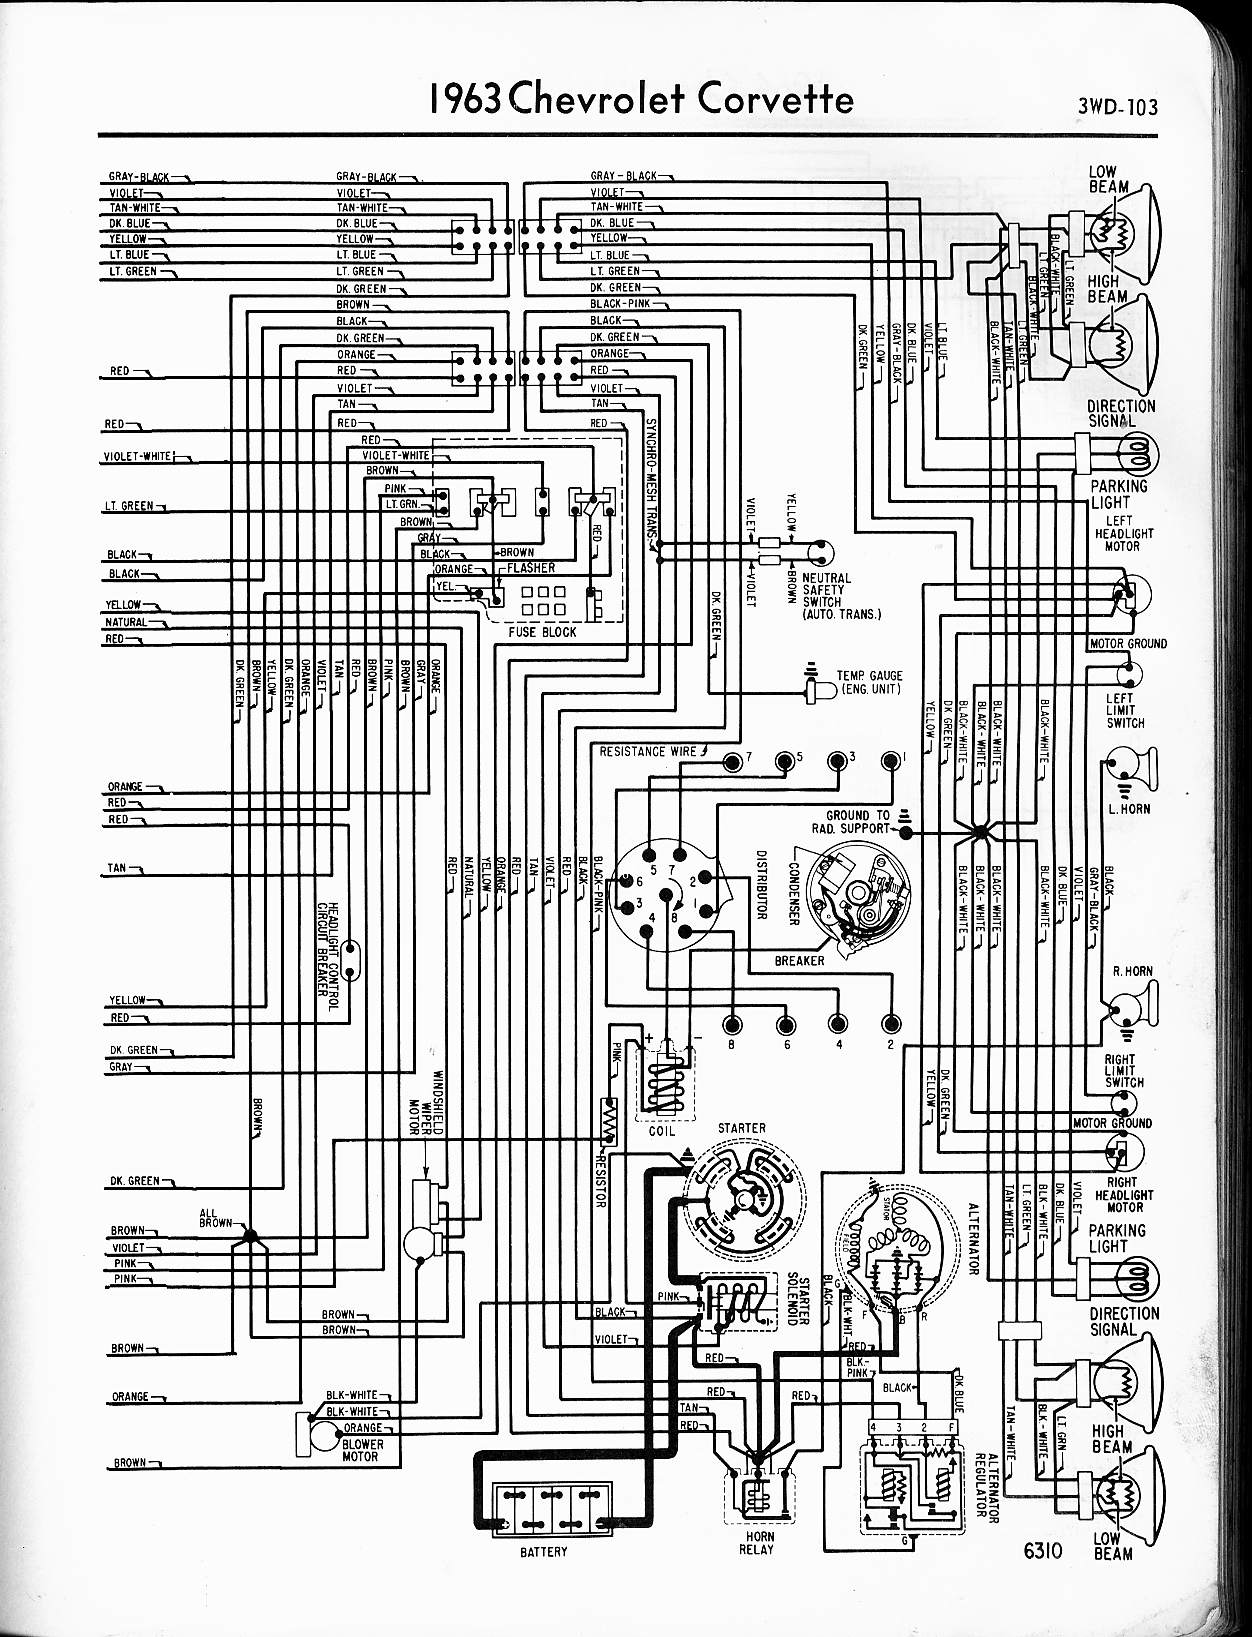 Corvette Wiring Diagram Library 1976 Chevrolet 57 65 Chevy Diagrams 2002 Brake Light Headlight